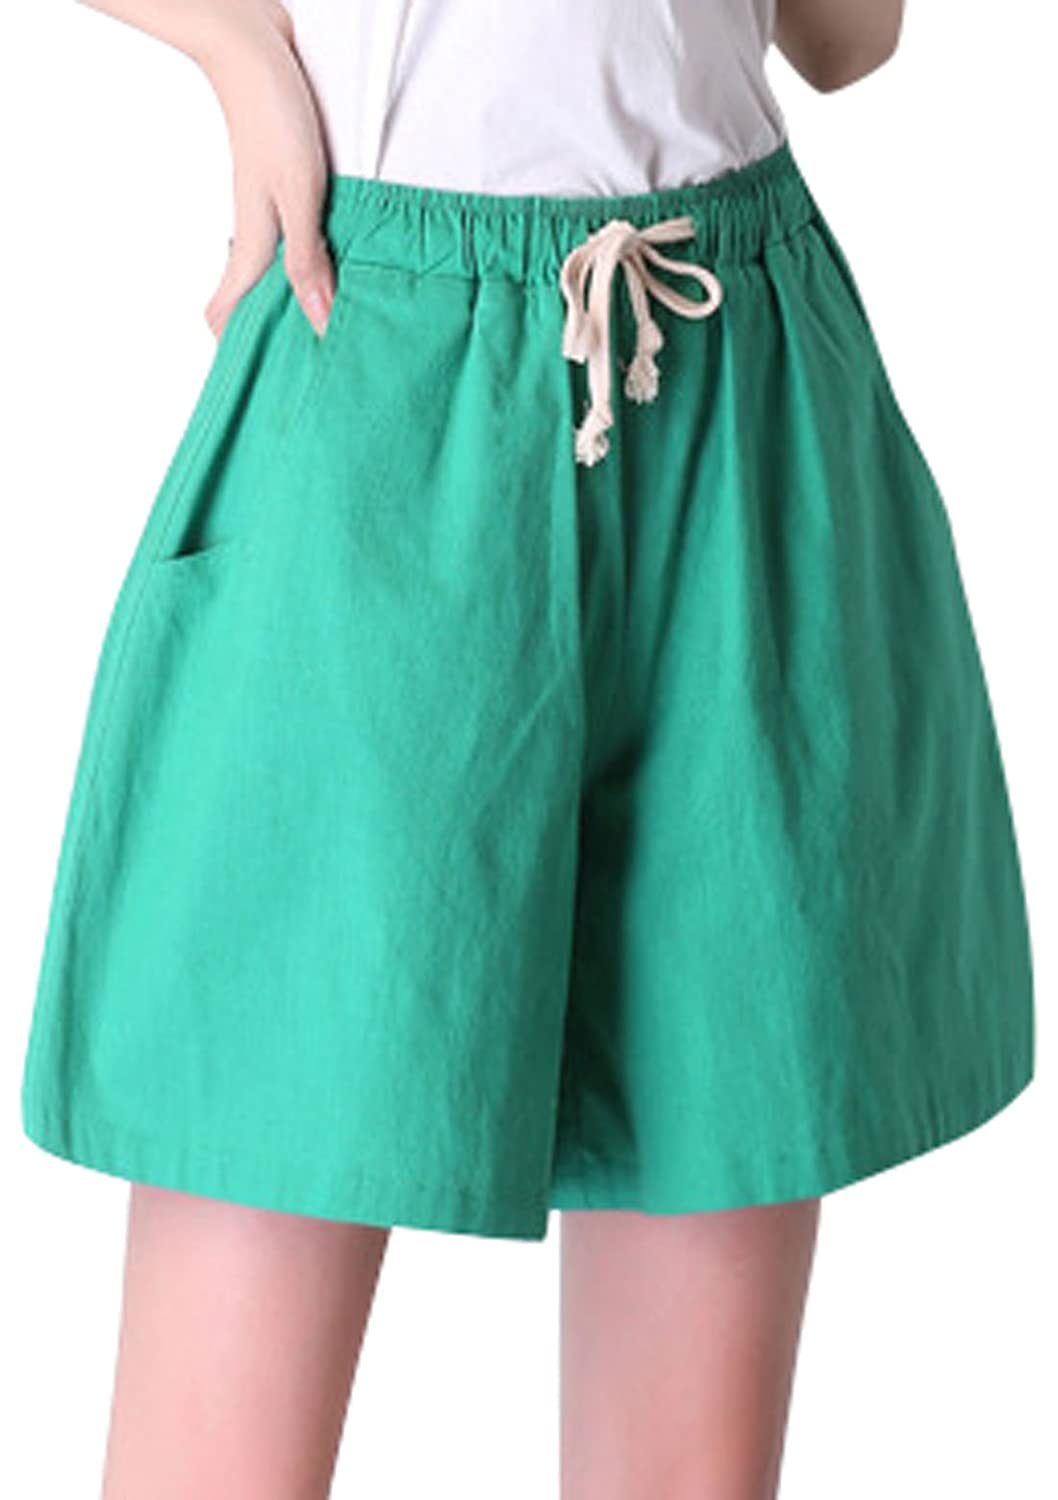 M Green Qiuse Women's Casual Wide Legs Elastic Waist with Drawstring Bermuda Shorts